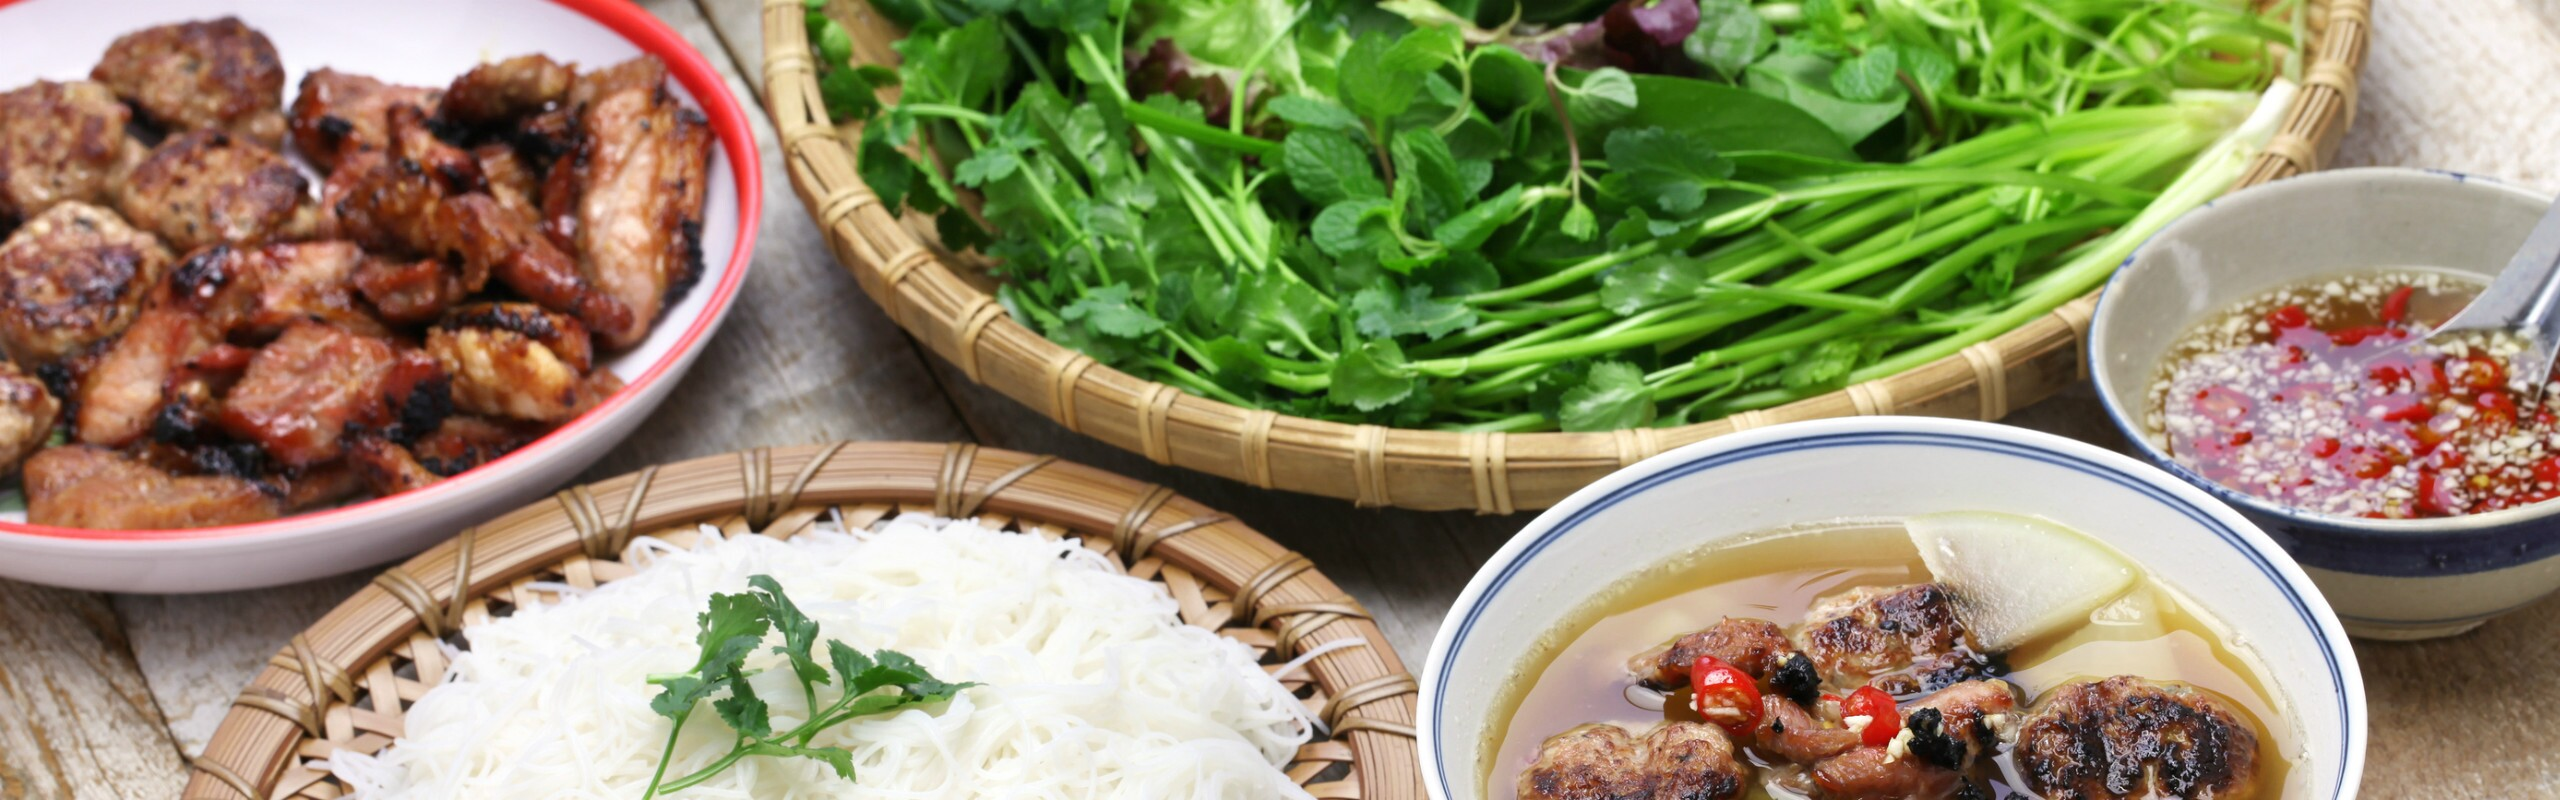 Food and Drink in the Mekong Delta Region